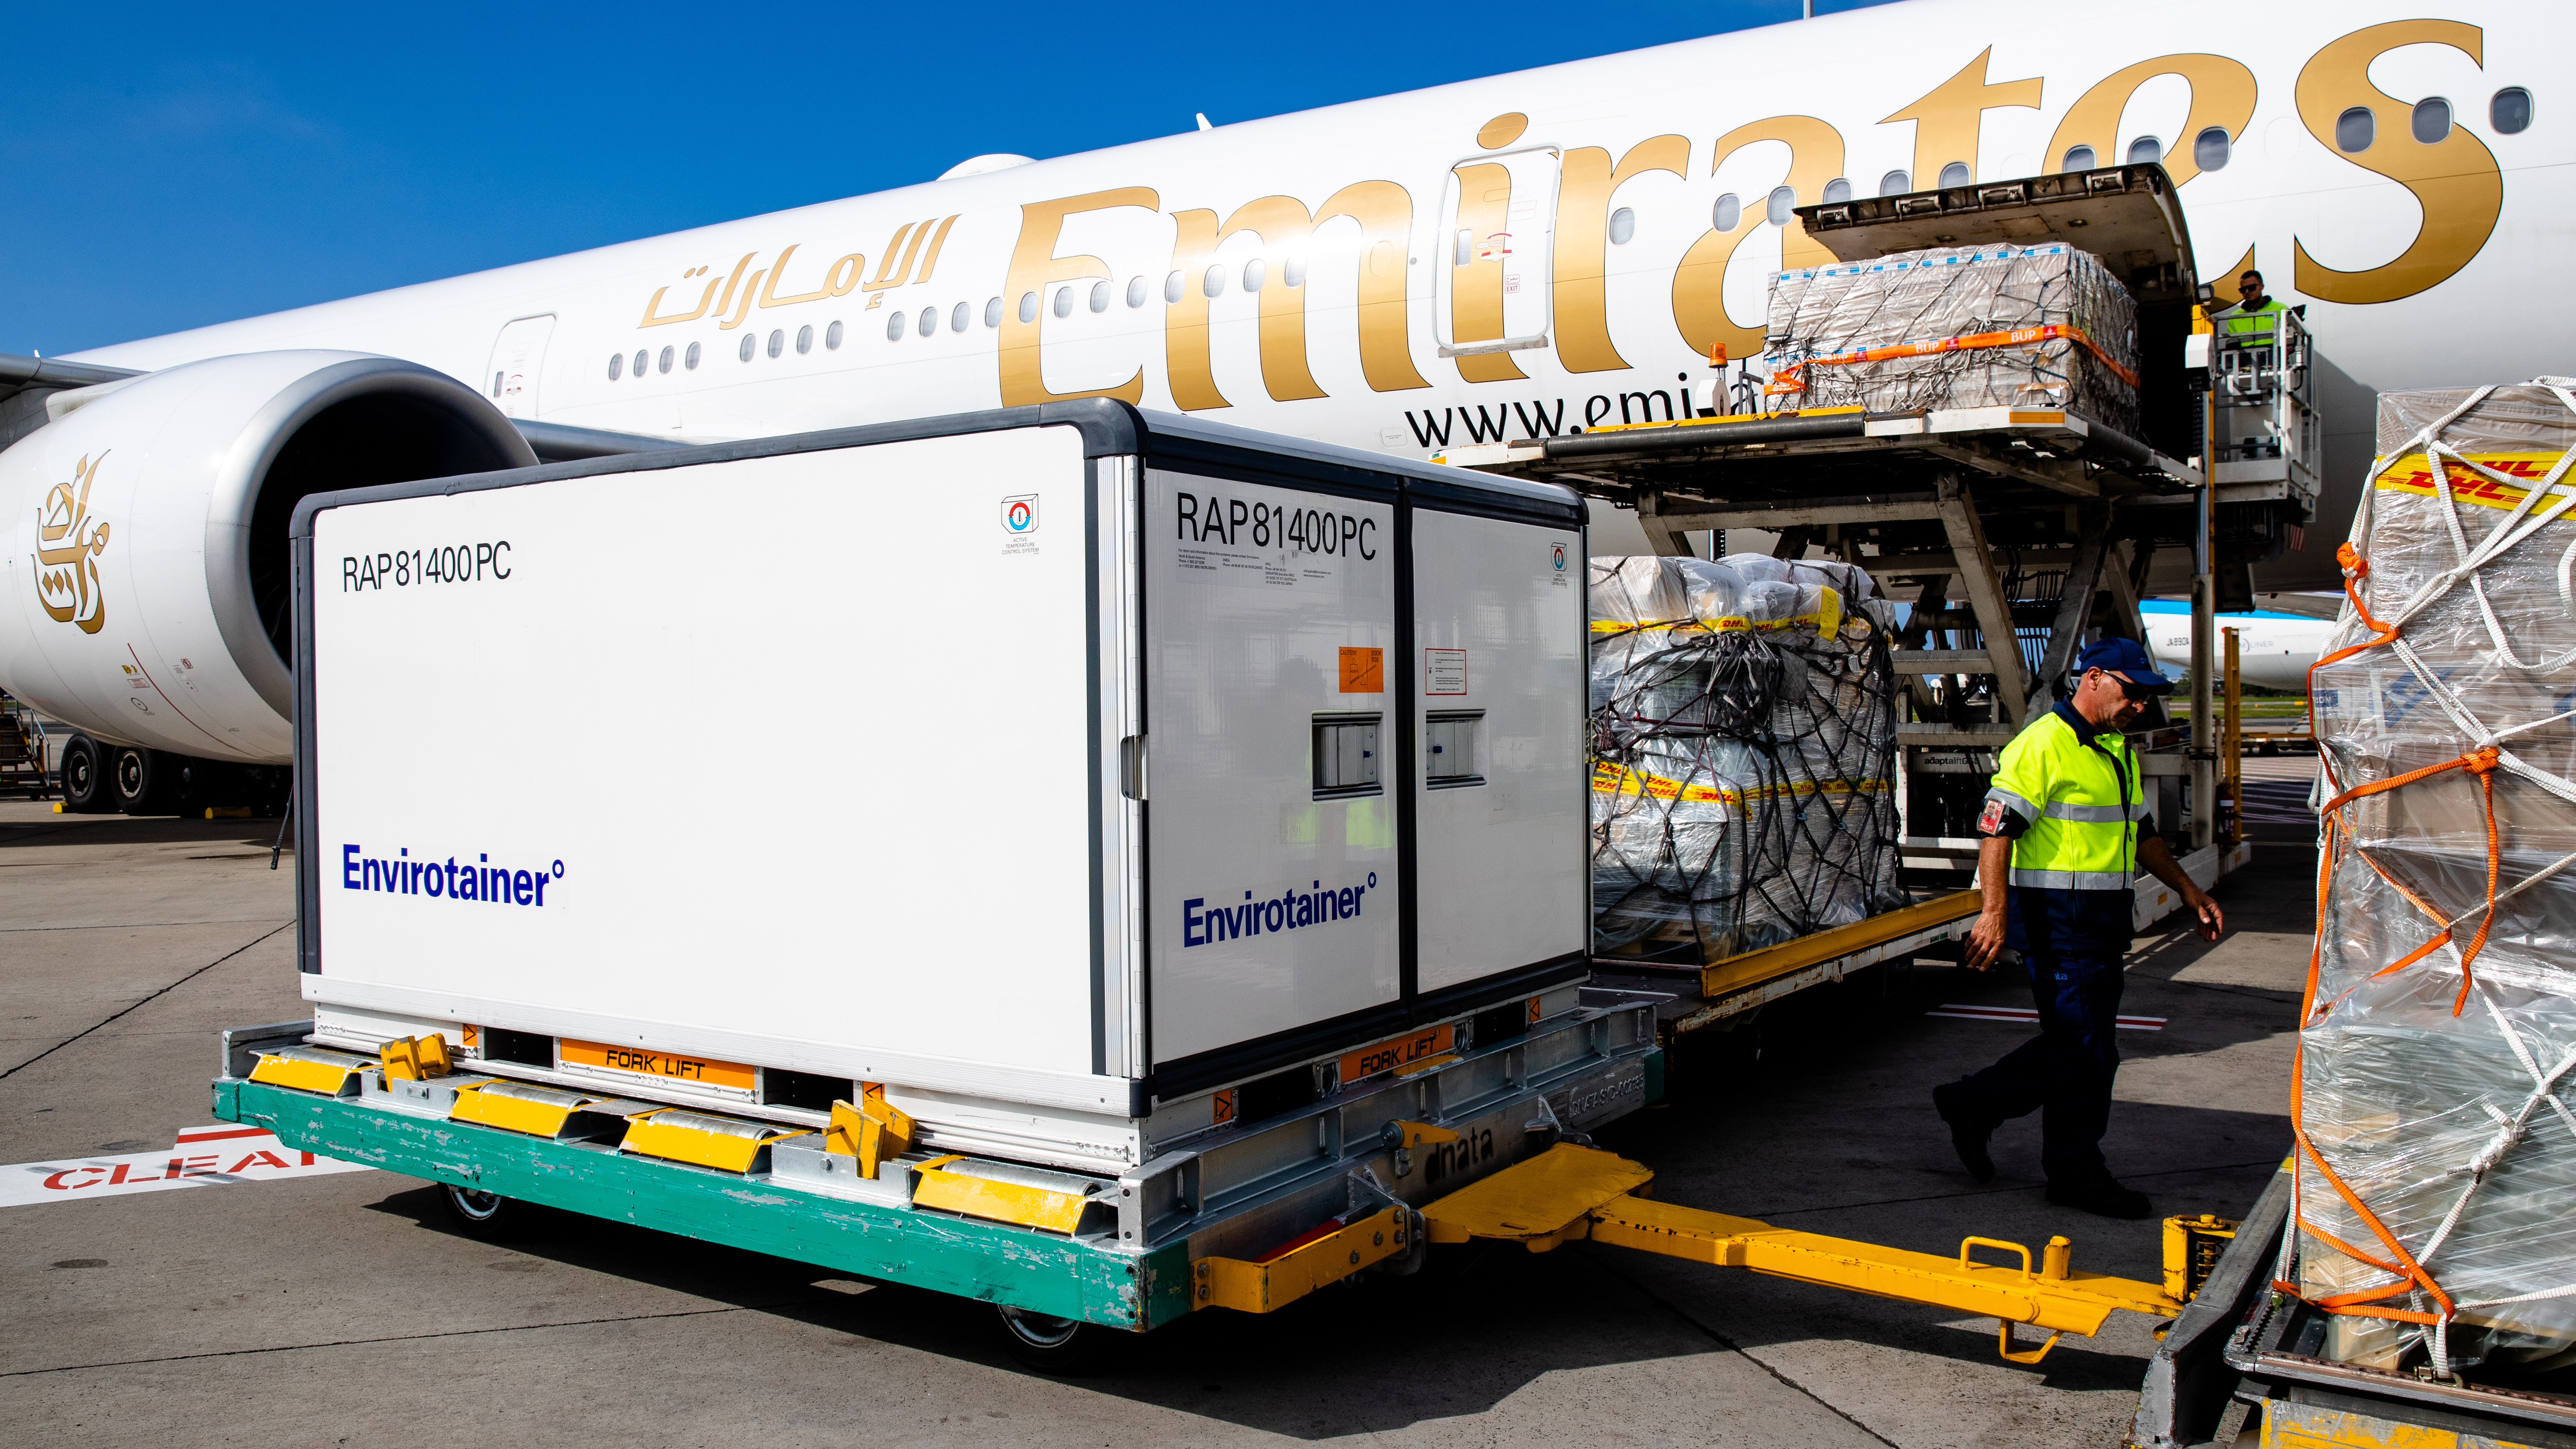 Container holding the AstraZeneca COVID-19 vaccine is removed from the Emirates airlines plane as the first vaccination doses into the country arrives at Sydney International airport.